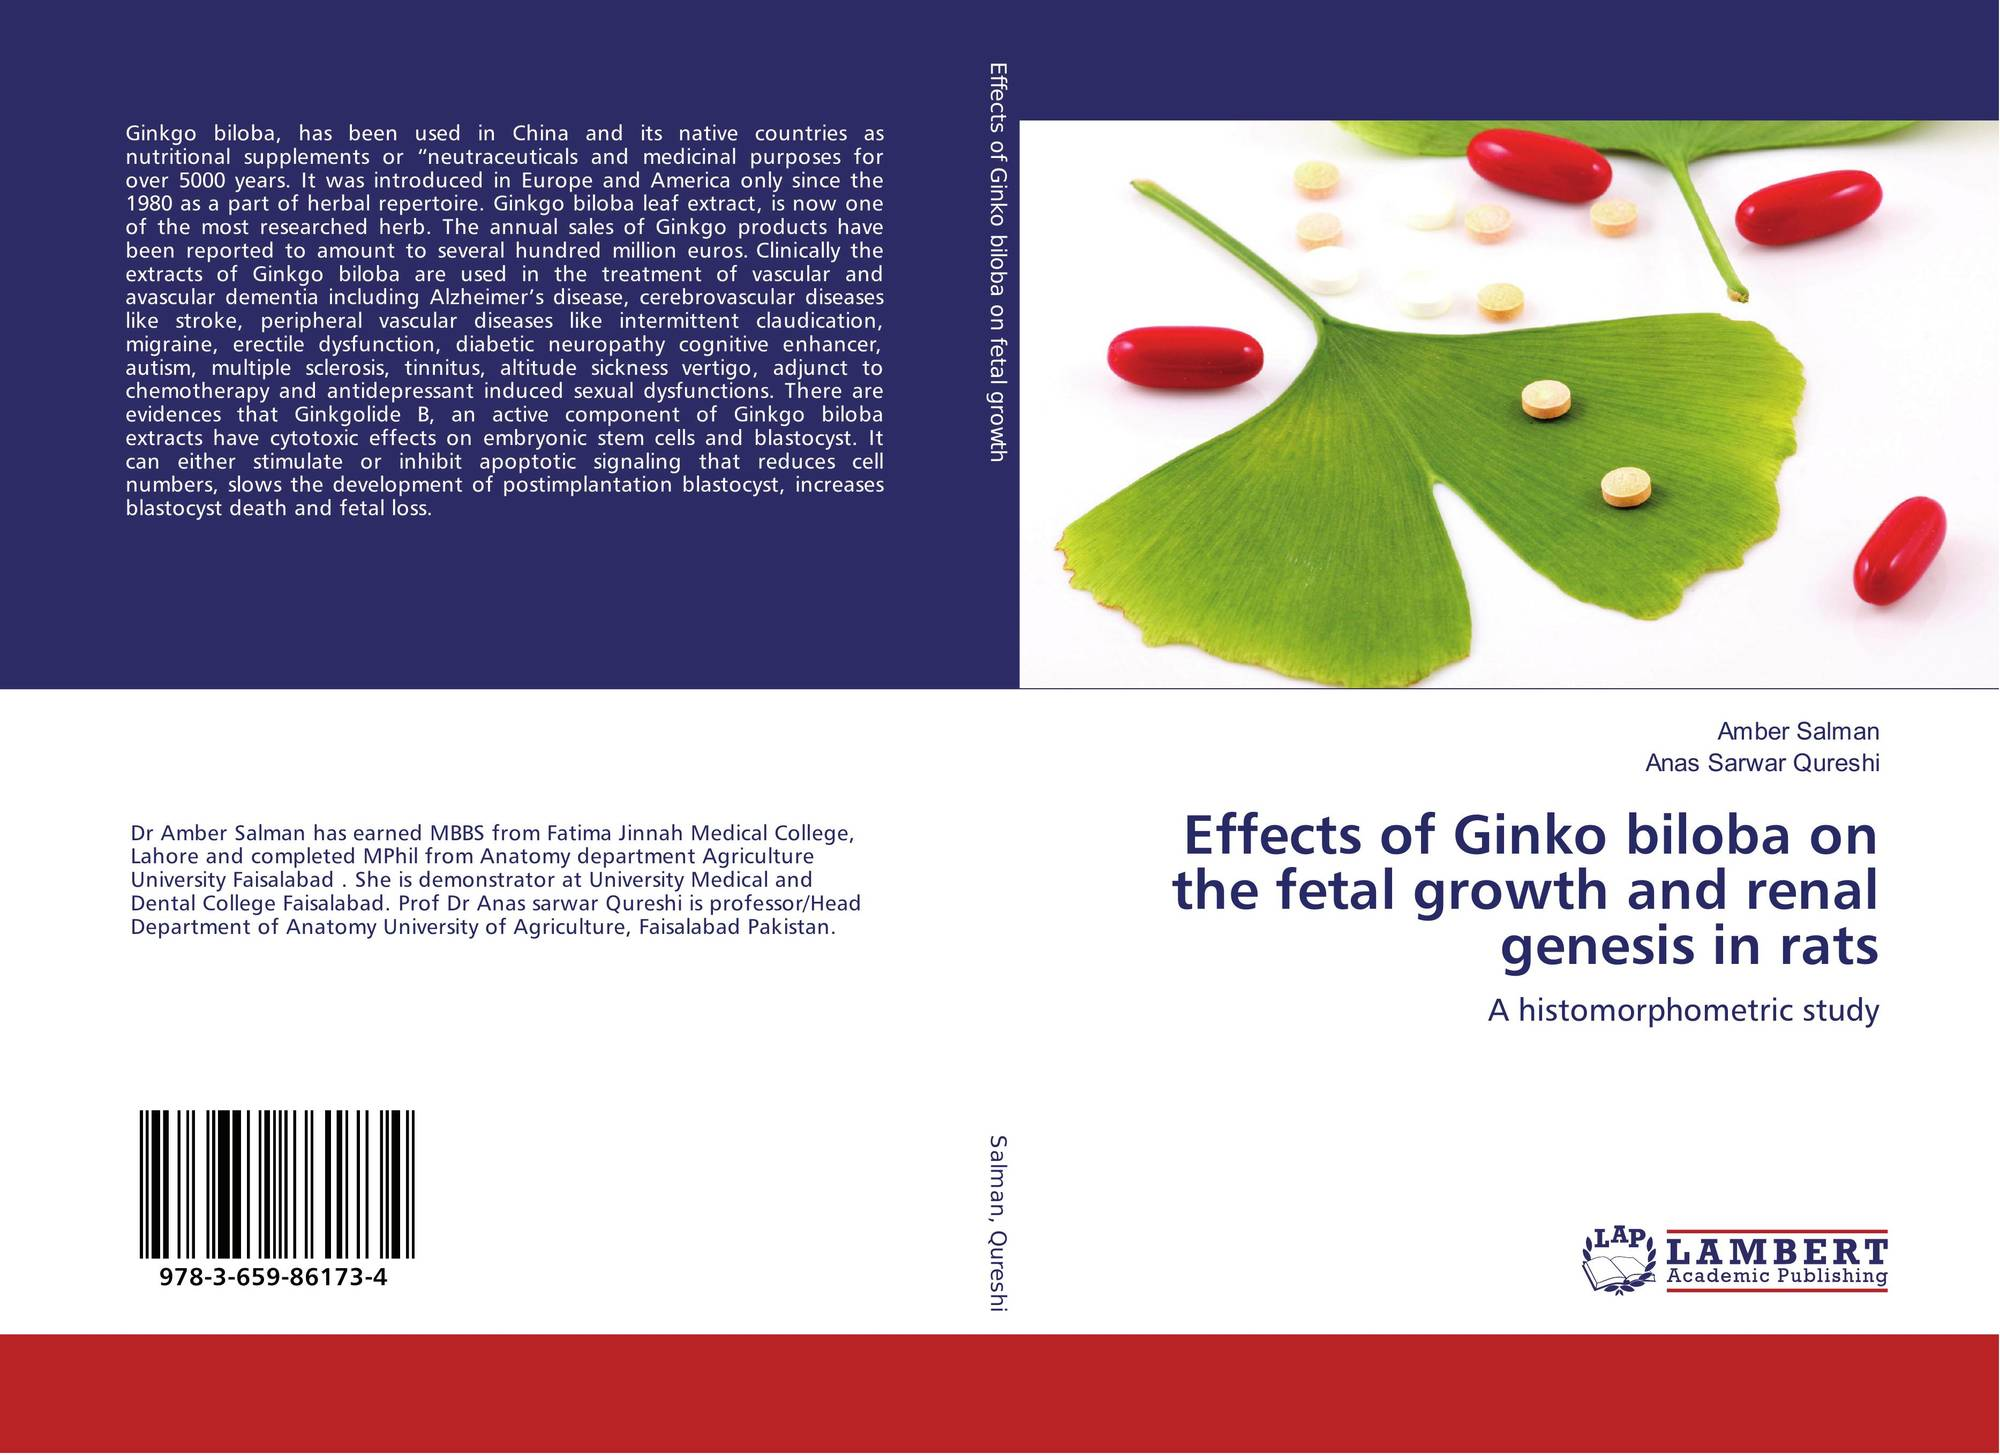 an analysis of effects of ginko biloba on a person Accumulating evidence suggests that ginkgo biloba is cardioprotective, in part   the major finding of this analysis was that g biloba had no effect on bp or pp in   the antihypertensive effects of g biloba may not be evident in elderly persons, .